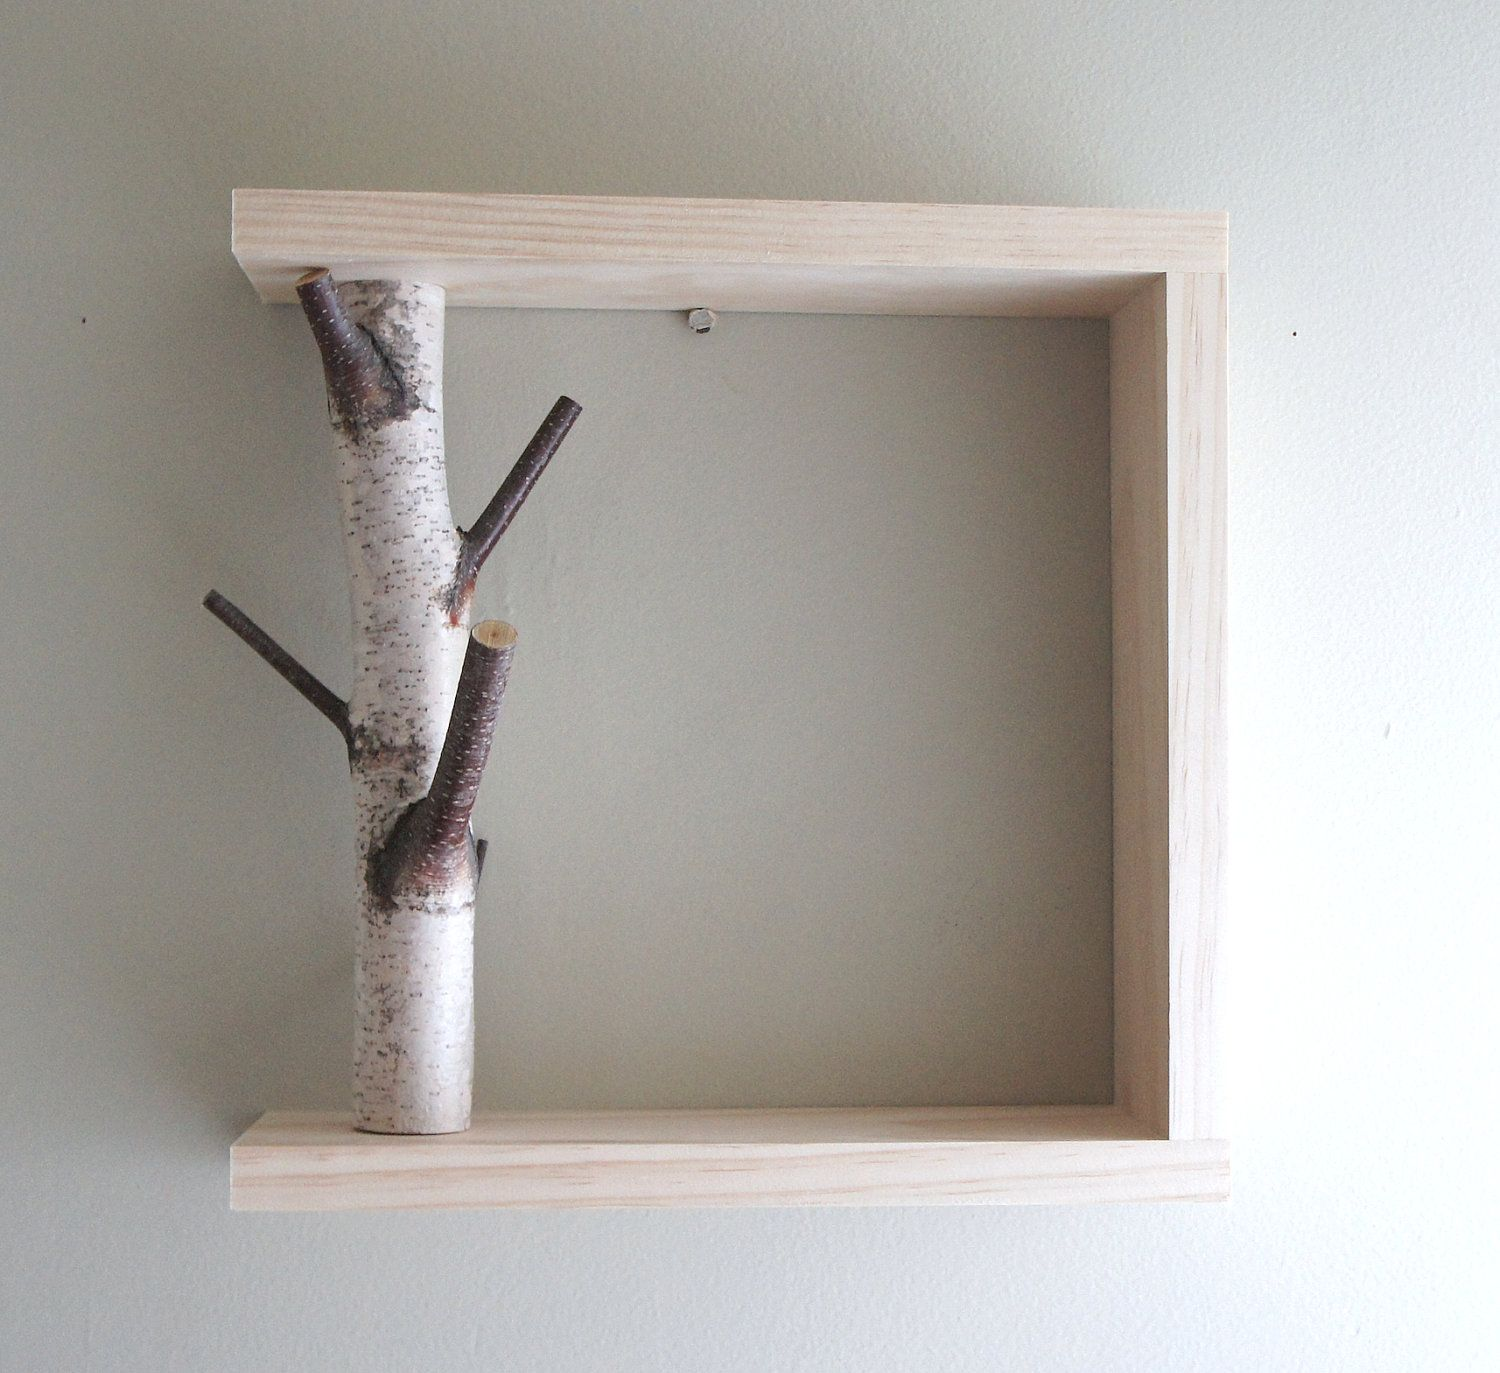 White Birch Forest Wall Artshelf  12X12, Birch Shelf, Wooden